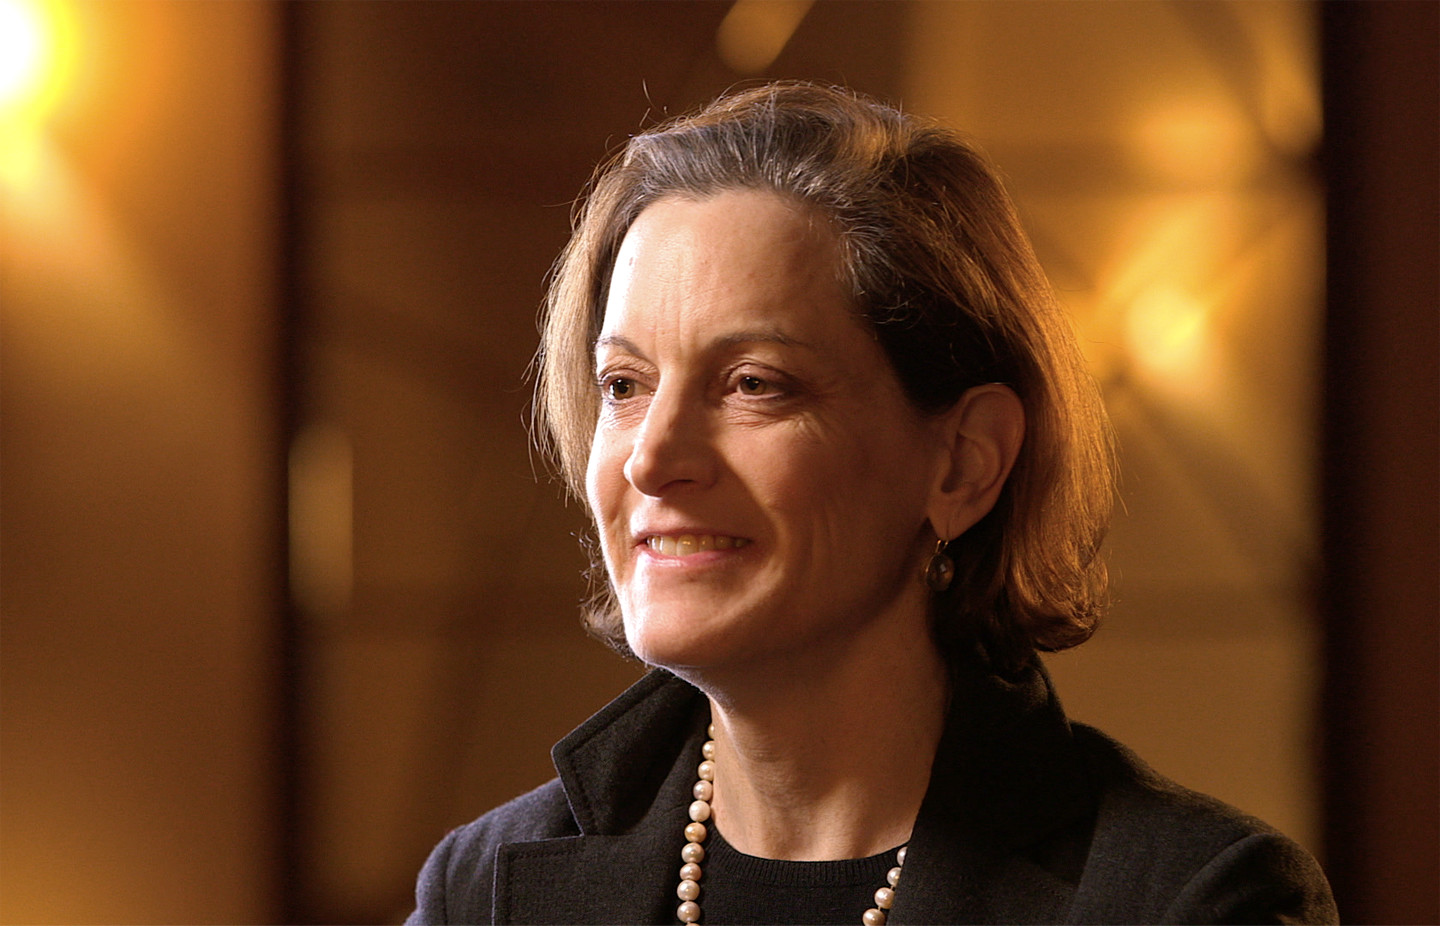 Anne Applebaum, interviewee on John Paul II: Liberating a Continent, the fall of Communism.